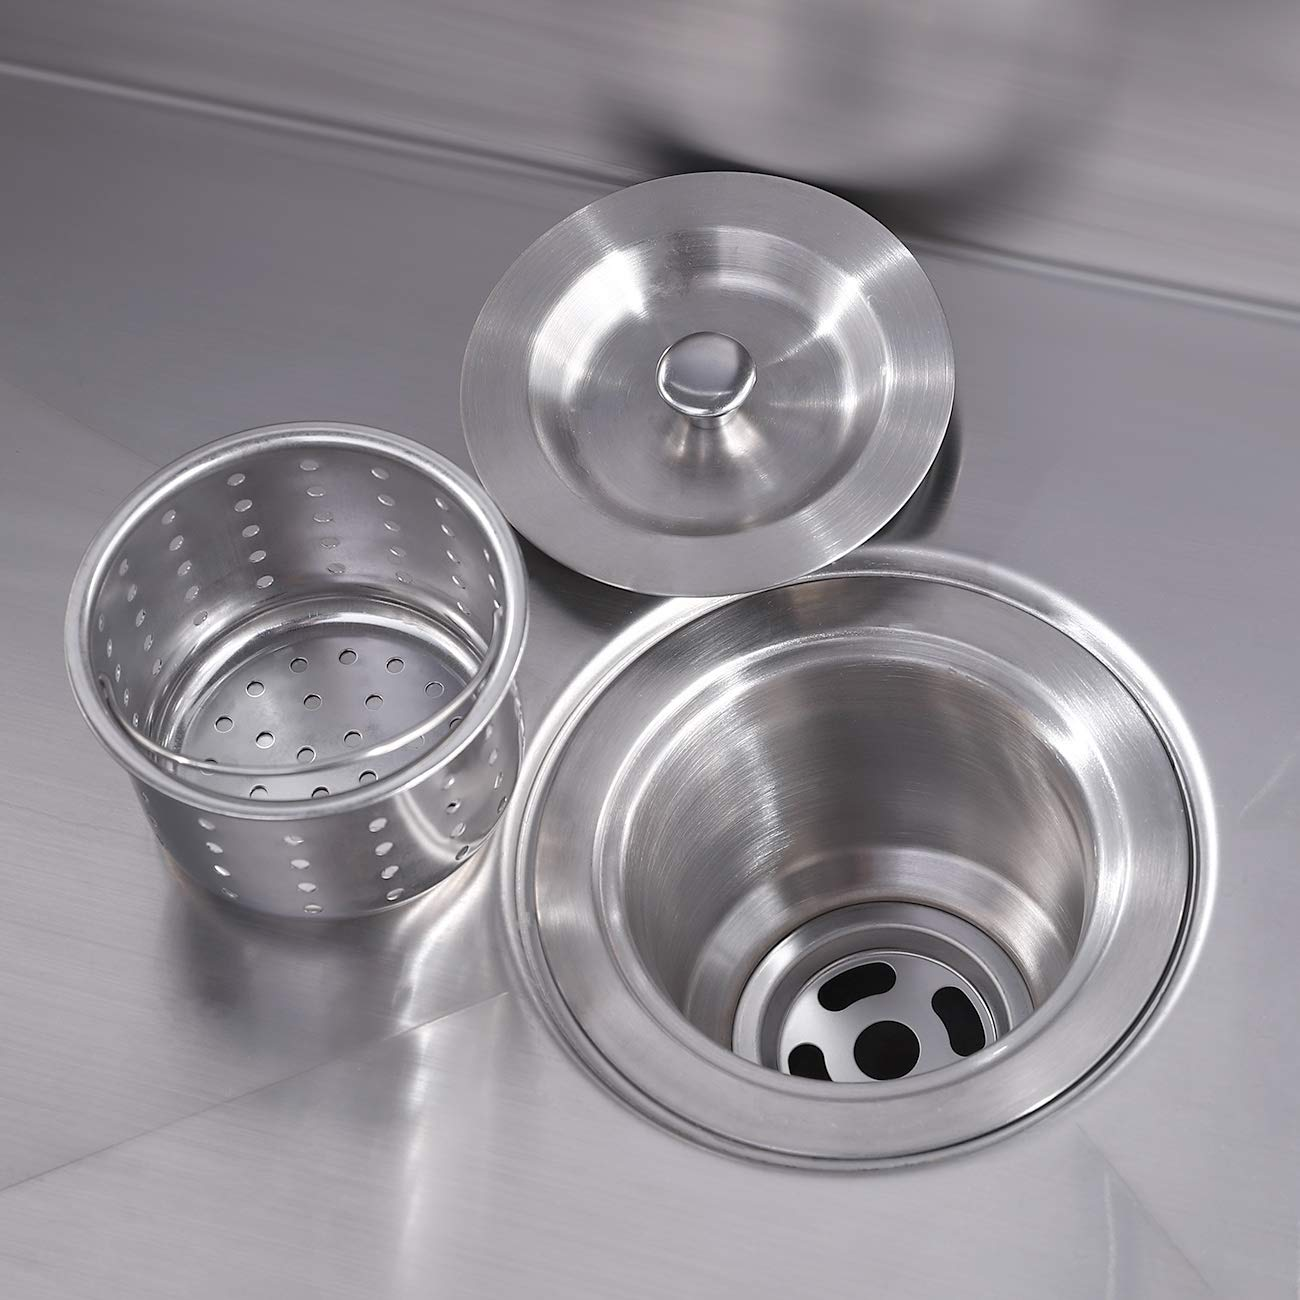 Kes Kitchen Sink Drain Stopper 3 1 2 Inch With Basket Strainer